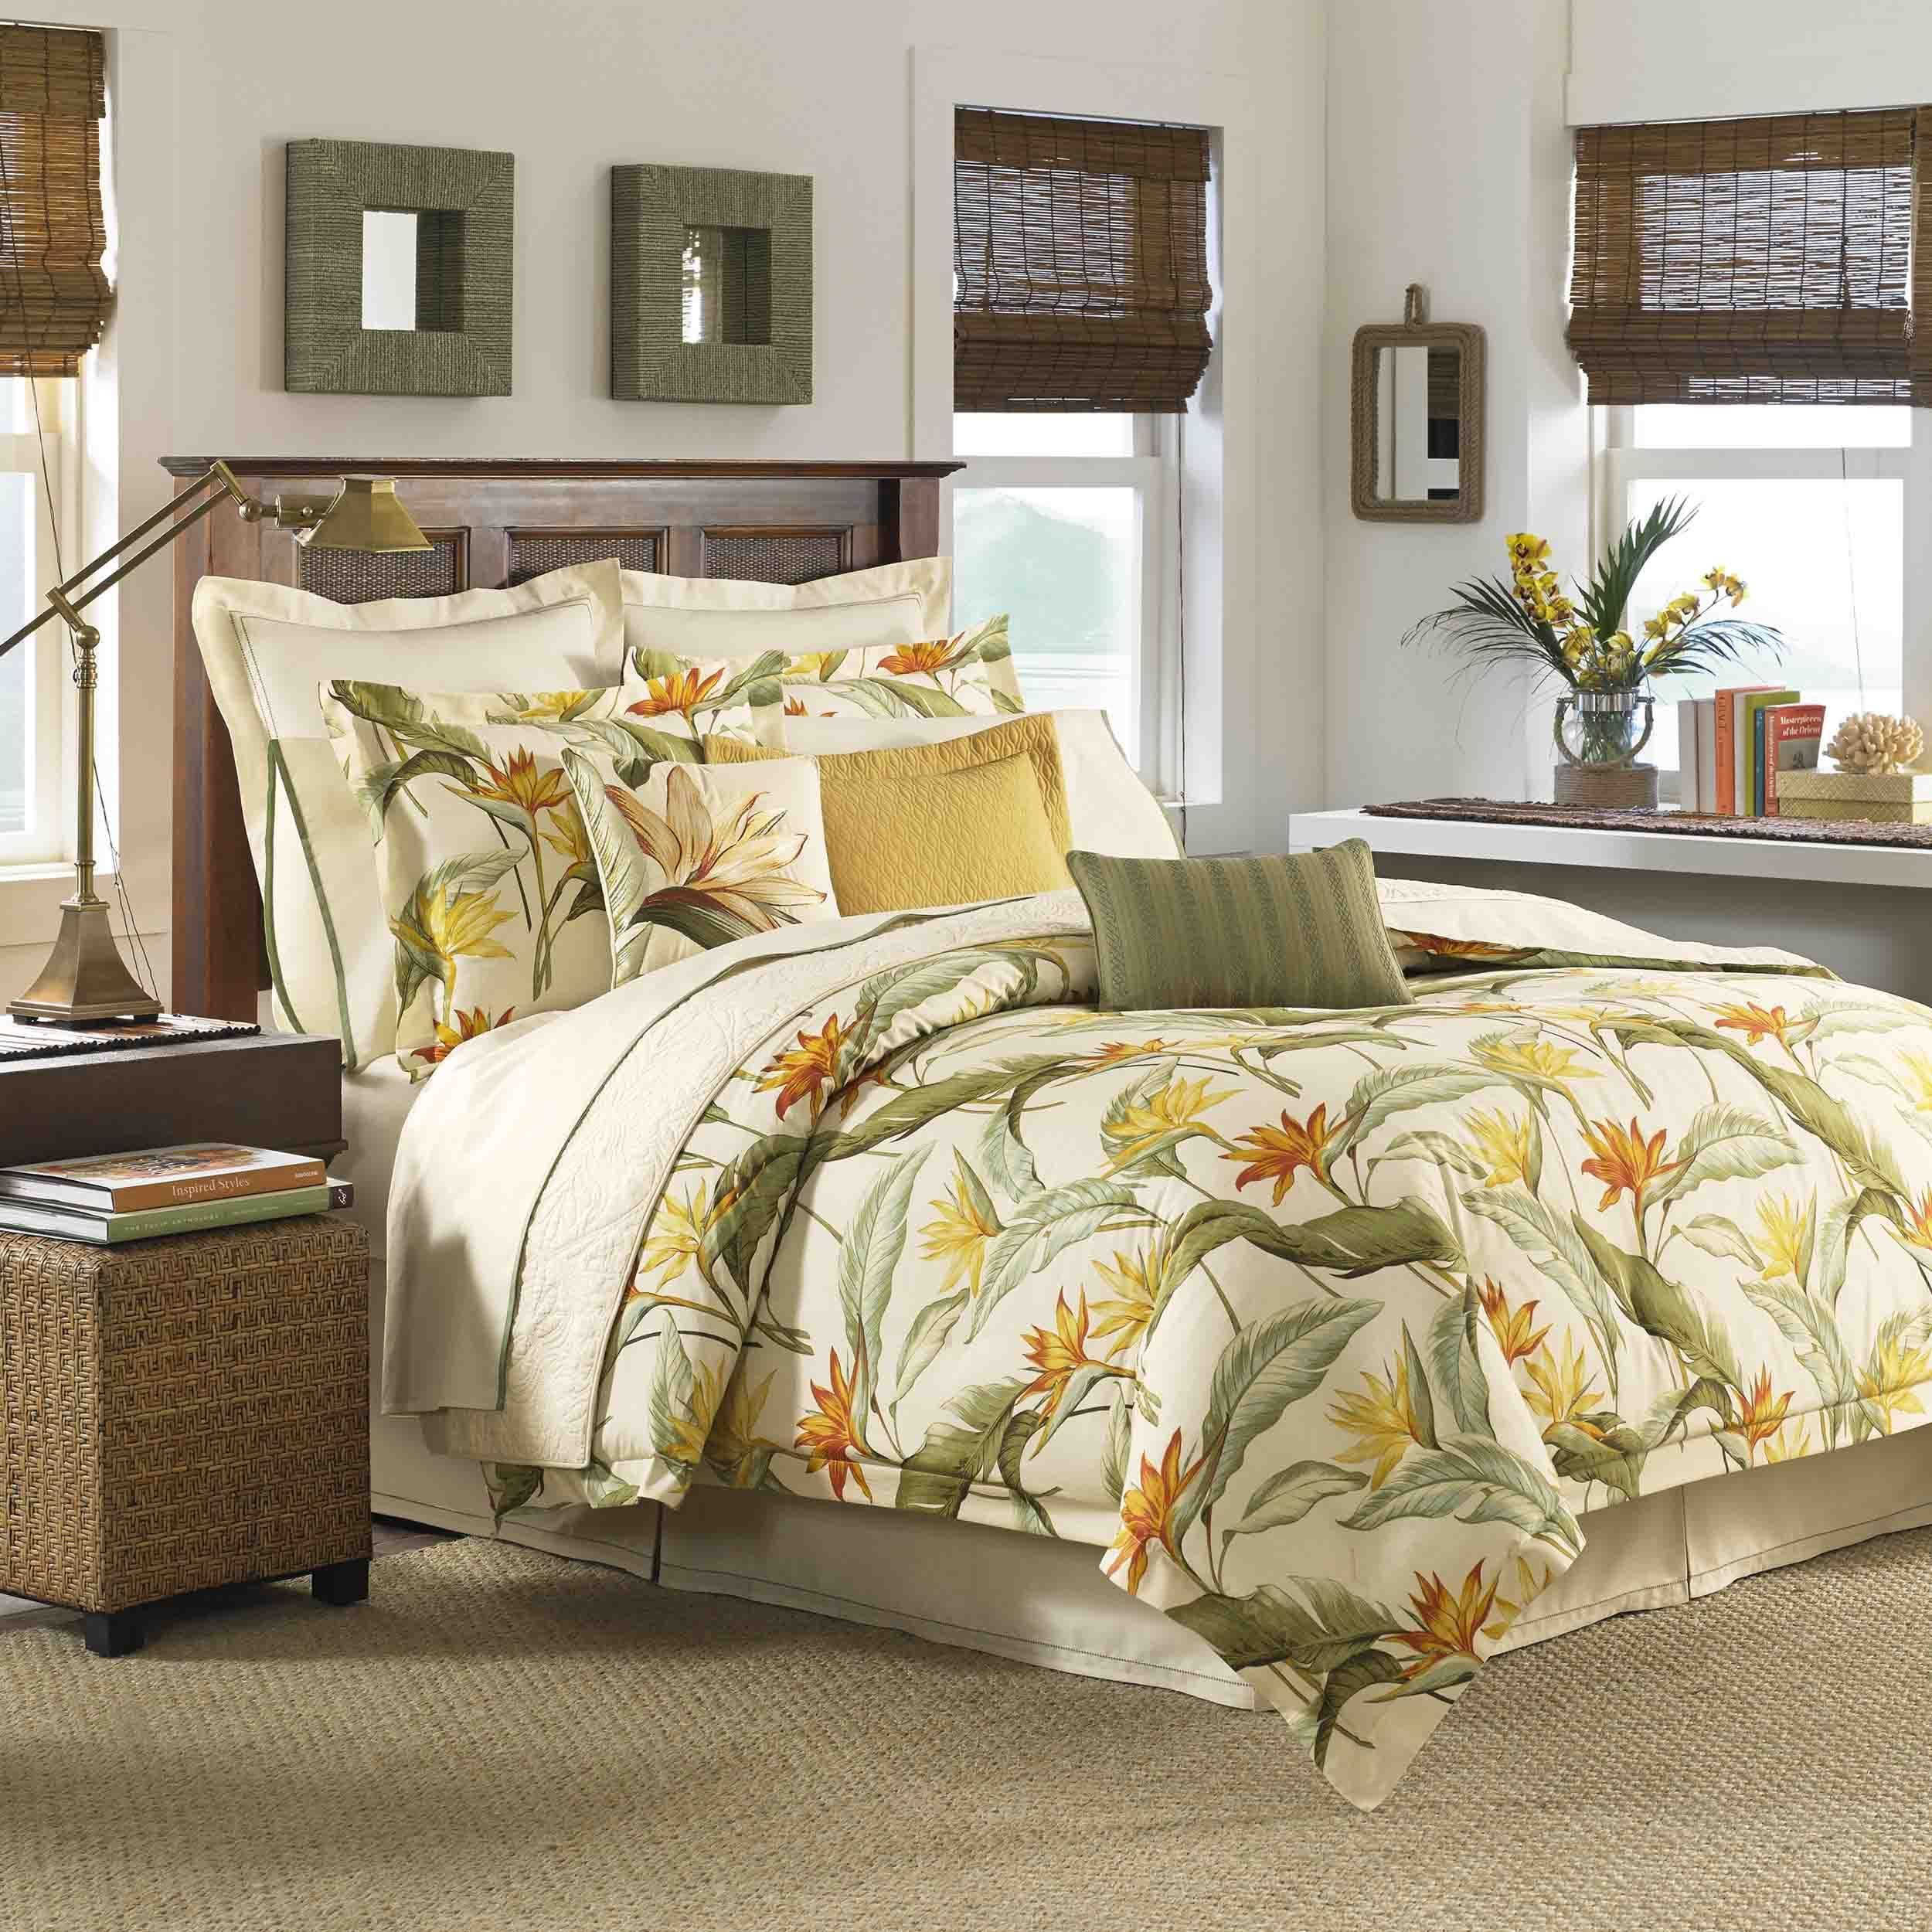 Tommy Bahama Birds Of Paradise 4 Piece Comforter Set On Sale Overstock 11193710